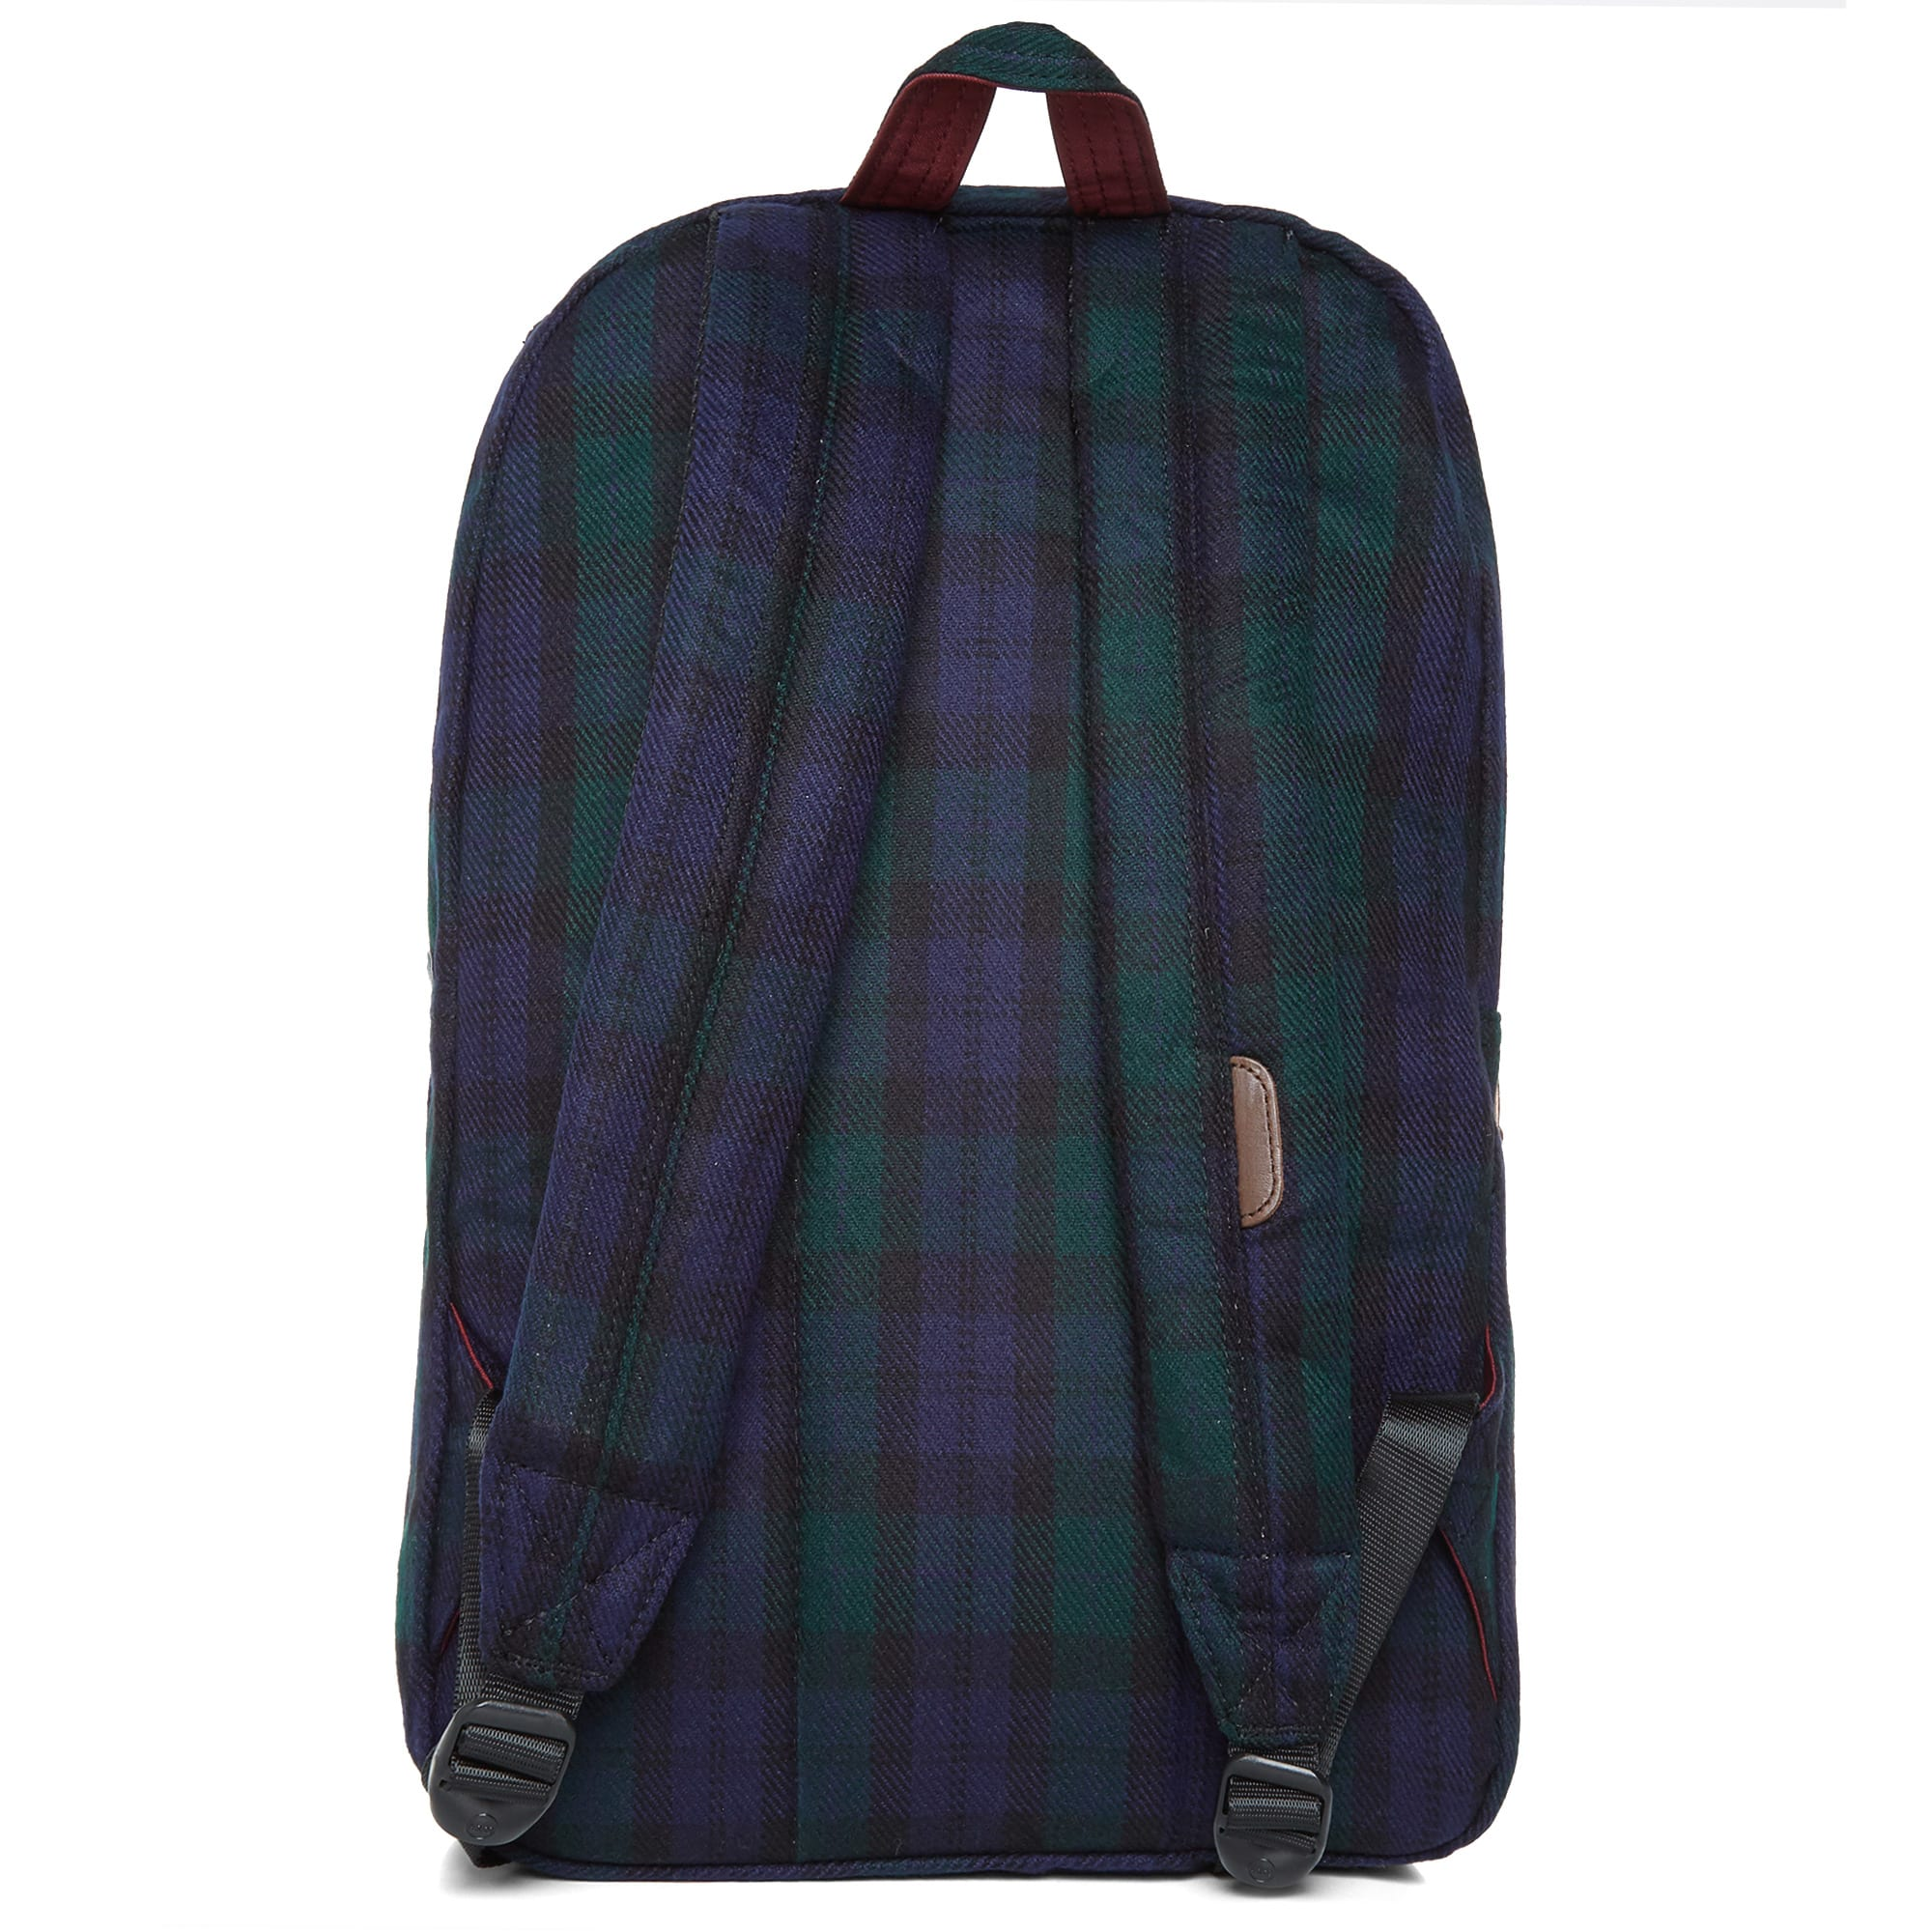 97cafb40f52 Herschel Supply Co. Settlement Backpack Blackwatch Plaid